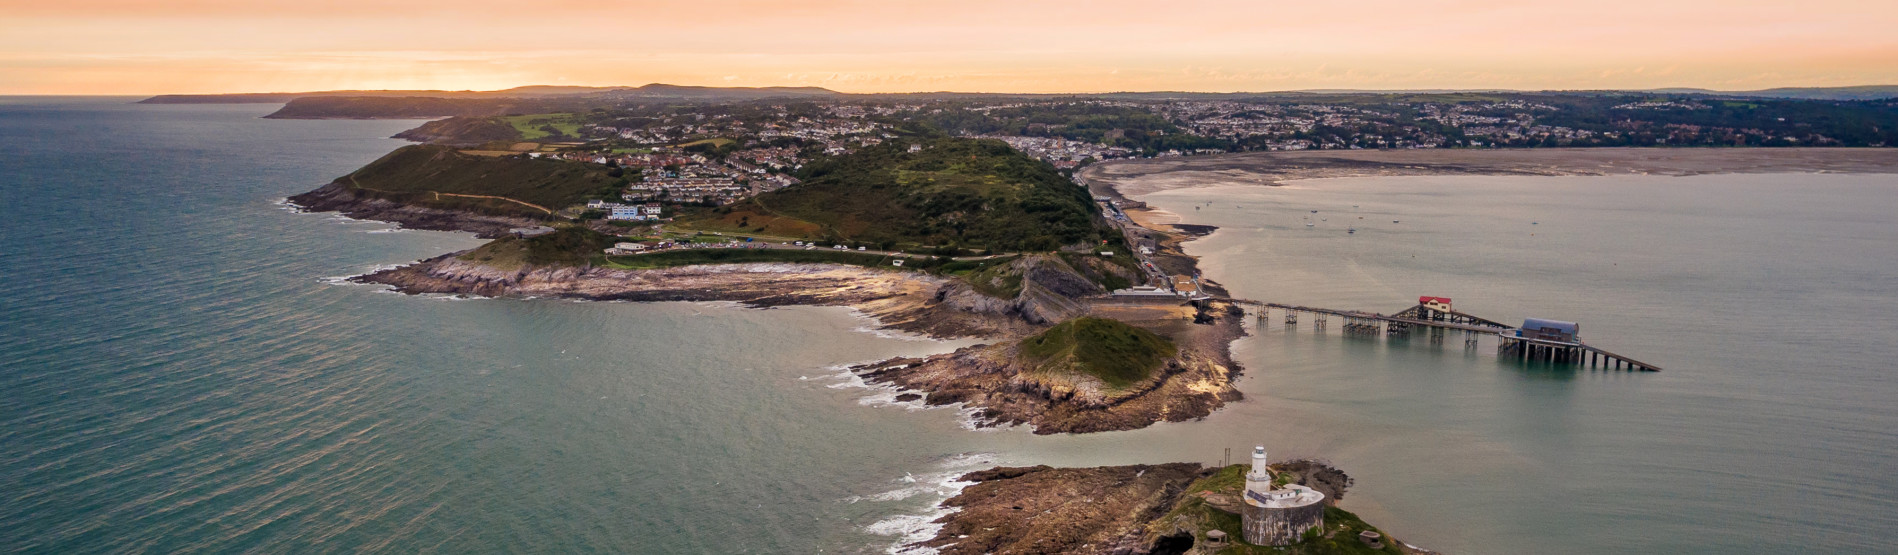 Image shows an aerial shot of Mumbles headland and lighthouse.